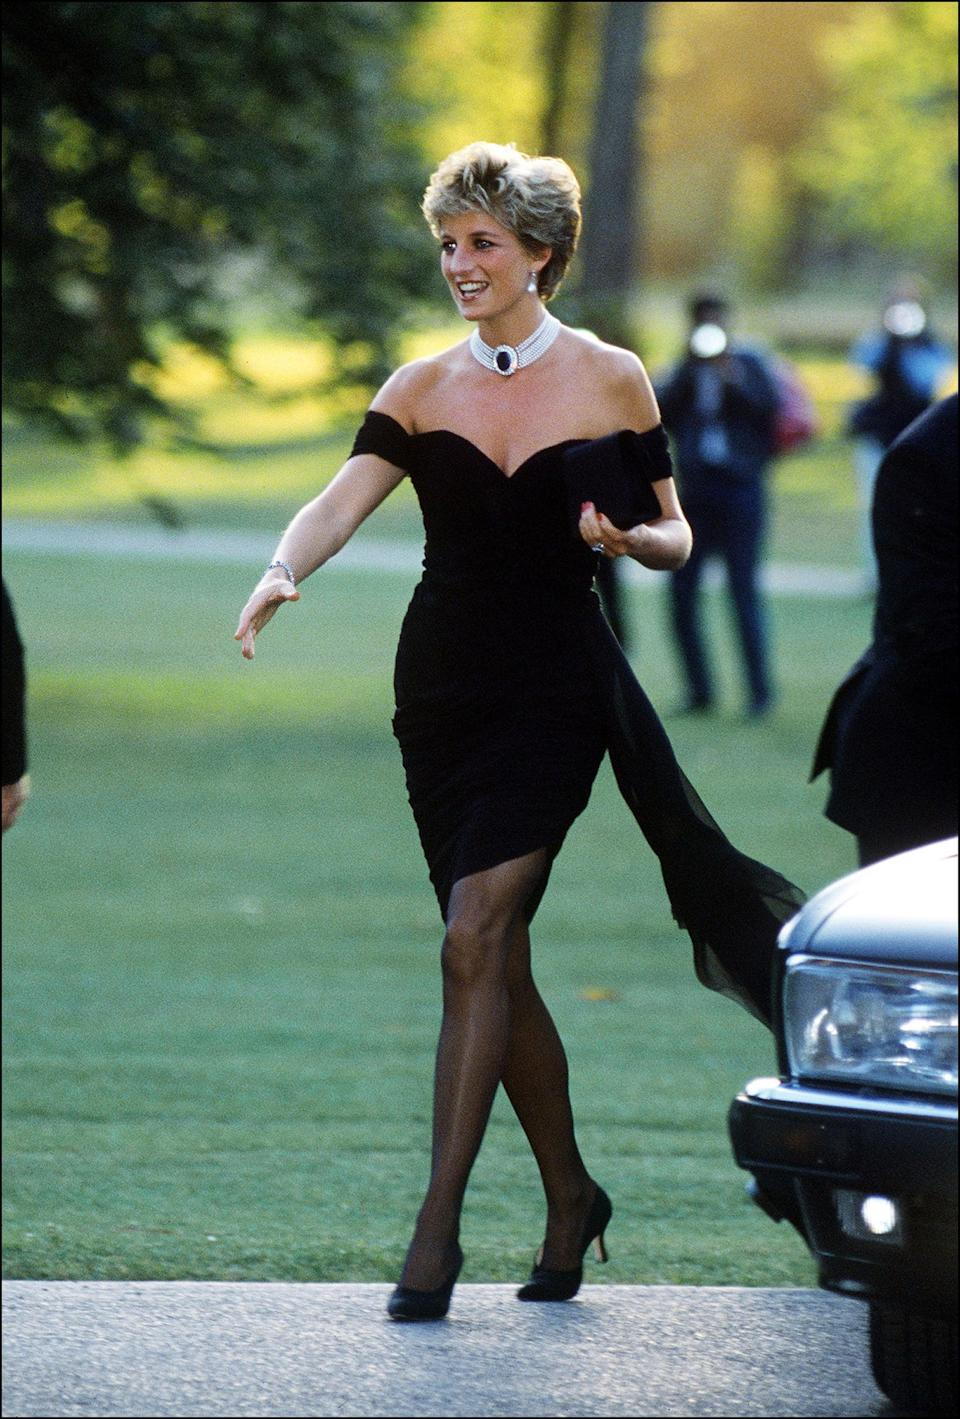 """<p><a href=""""https://www.popsugar.com/fashion/Iconic-Princess-Diana-Outfits-43937117"""" class=""""link rapid-noclick-resp"""" rel=""""nofollow noopener"""" target=""""_blank"""" data-ylk=""""slk:Princess Diana's Christina Stambolian gown"""">Princess Diana's Christina Stambolian gown</a> has infamously been dubbed """"the revenge dress,"""" as she wore it after separating from Prince Charles. The people's princess elevated this outfit with a pearl choker and sheer tights for an effortlessly sexy look. </p>"""